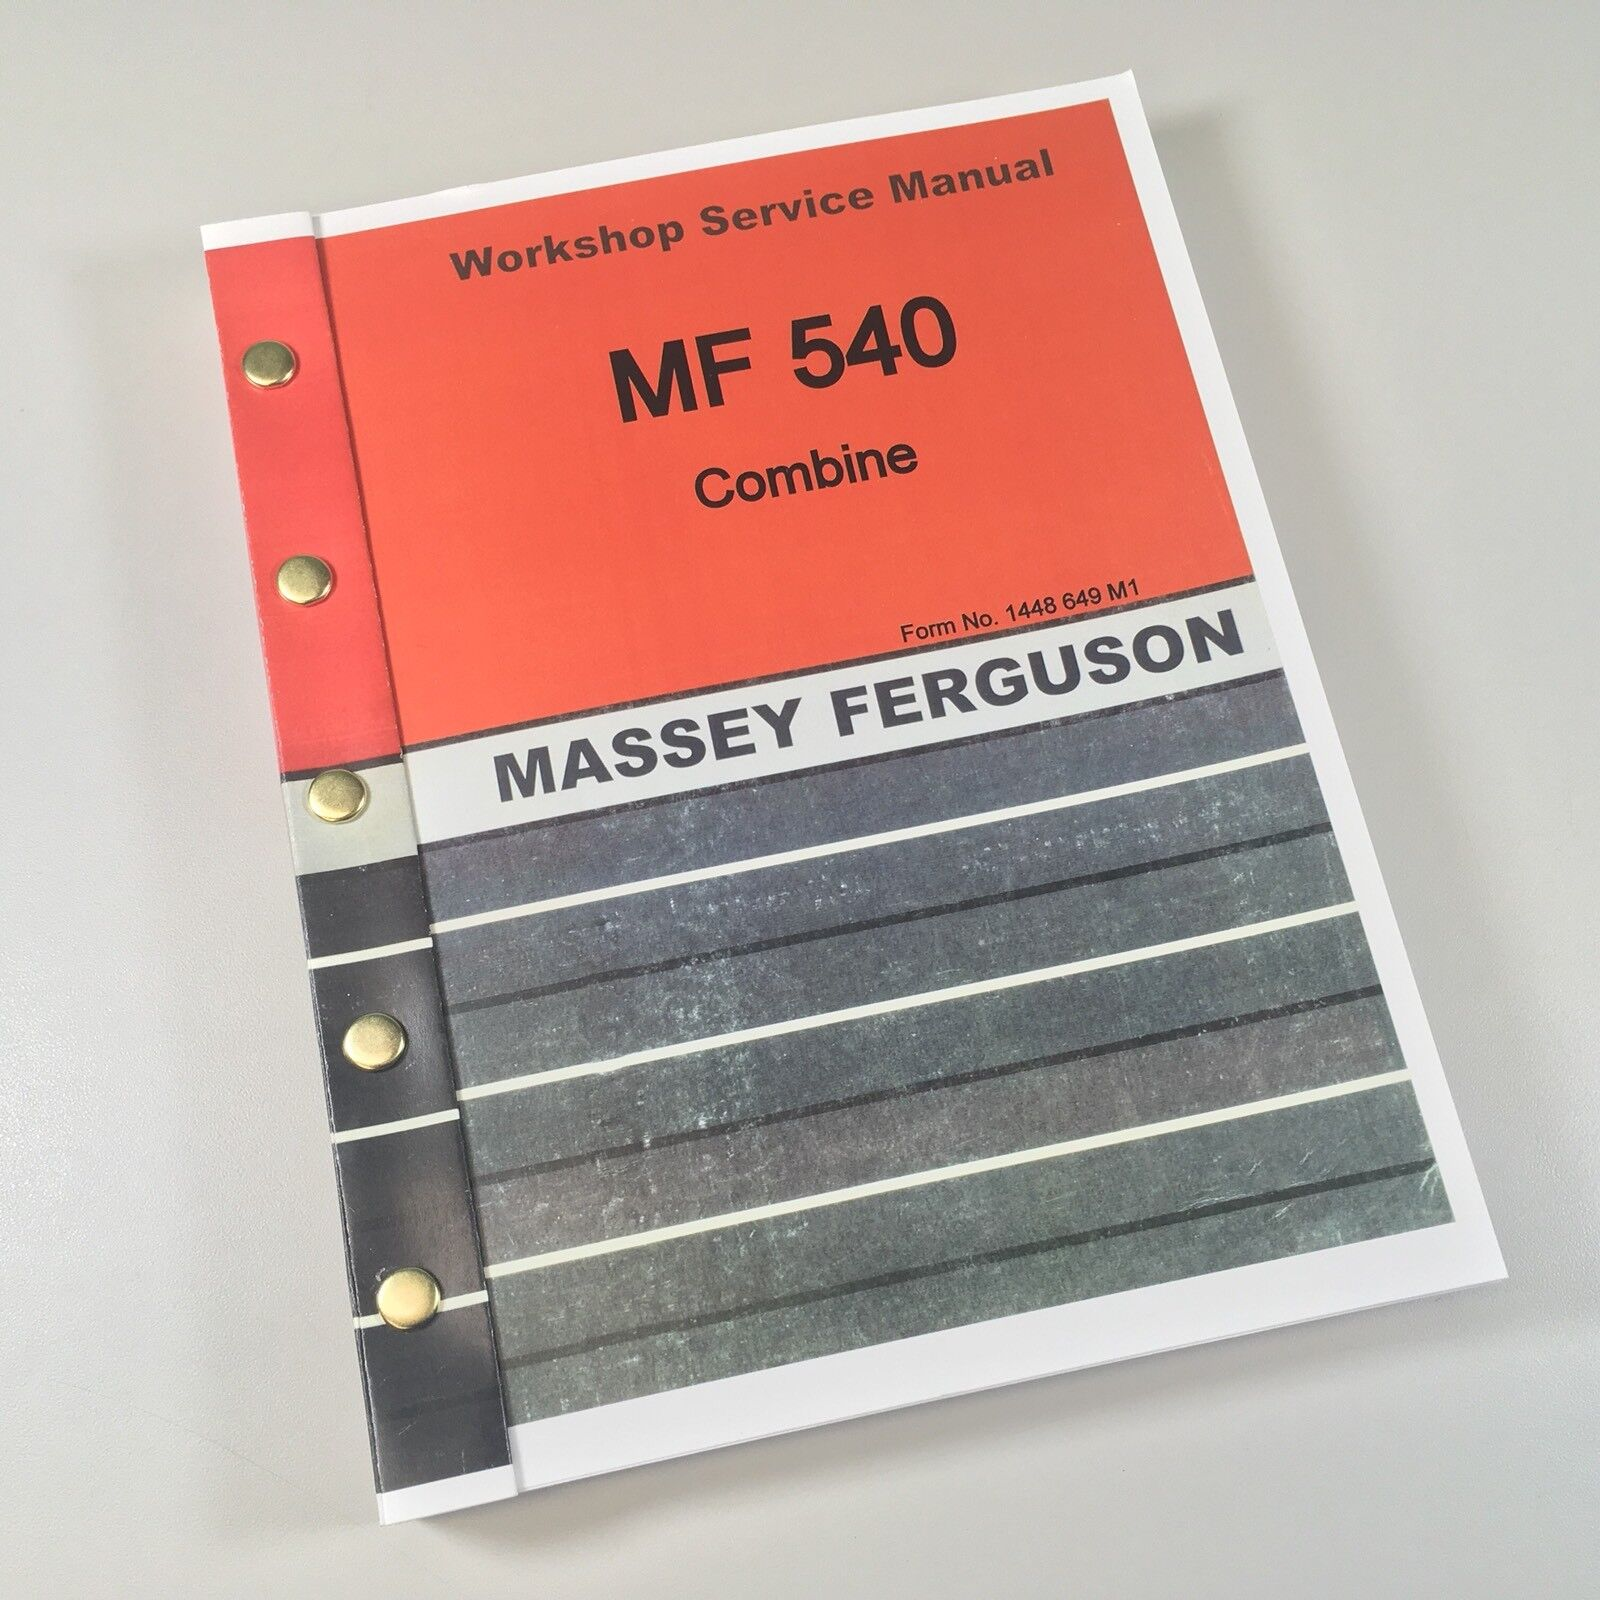 Massey Ferguson 540 Combine. Service Manual. Complete Service/Repair/Overhaul  Manual. Covers all years & serials of this model